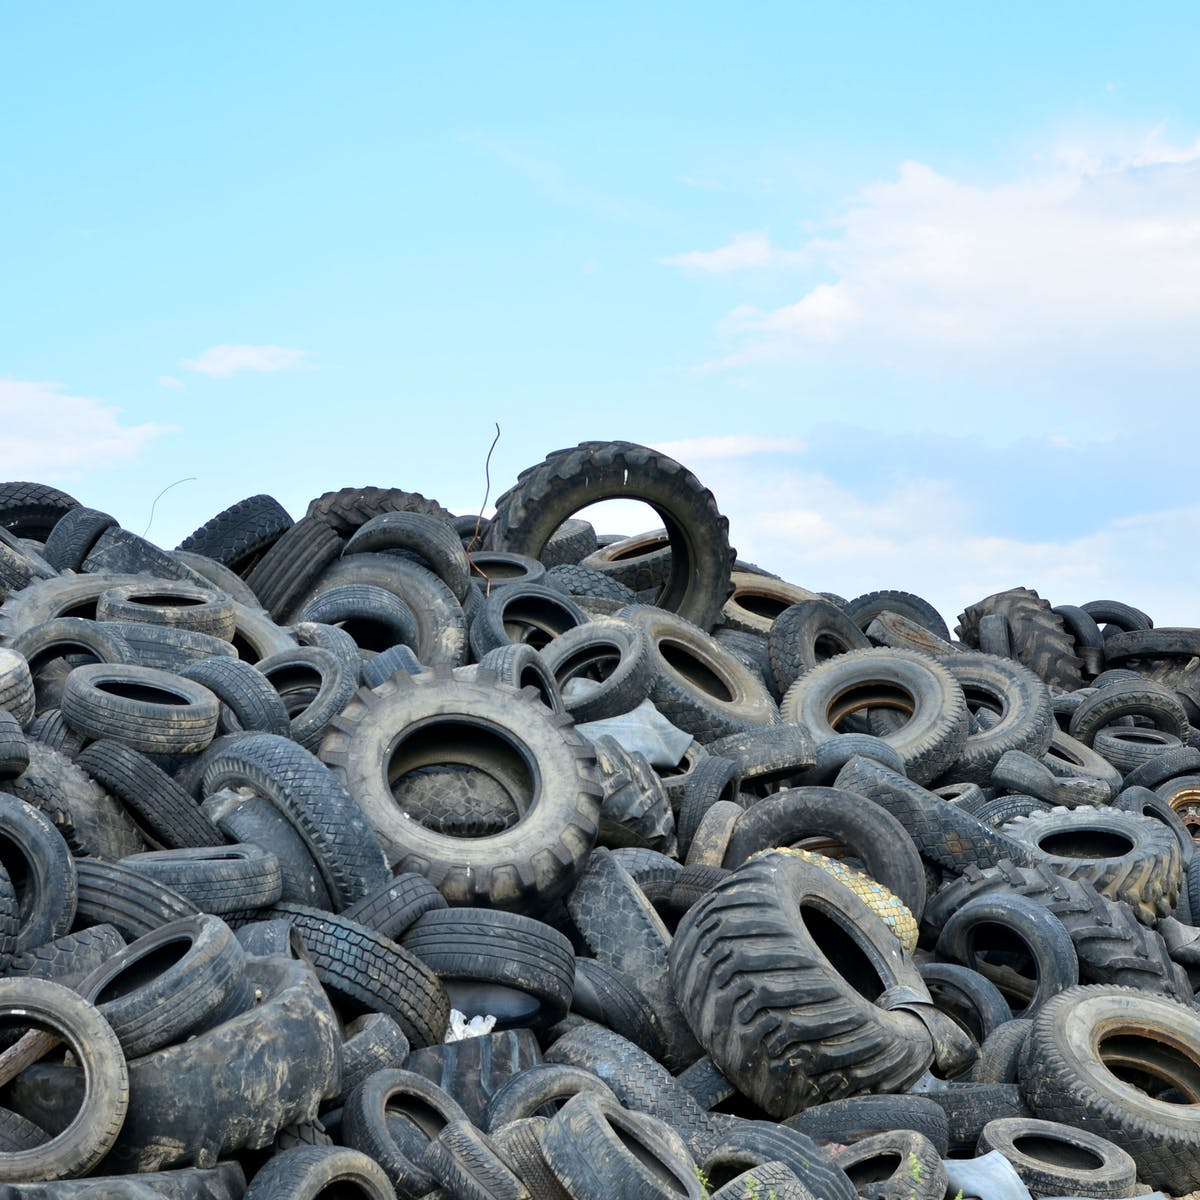 A New Recycling Technique Breaks Down Old Tires Into Reusable Materials